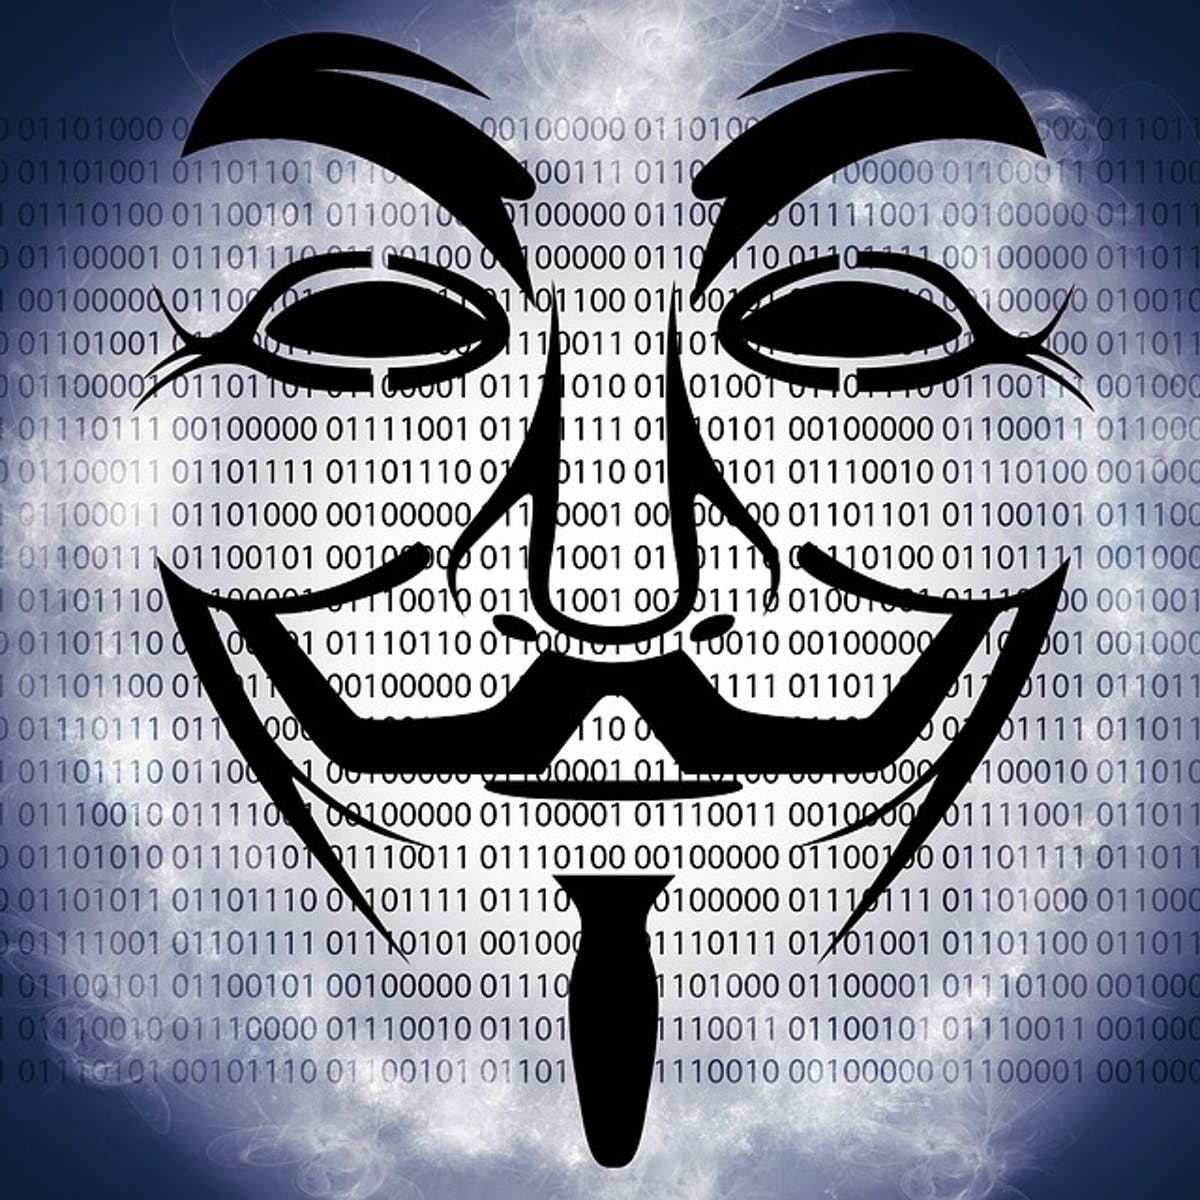 Study Explains Why Hacker Group Anonymous Has So Much Support